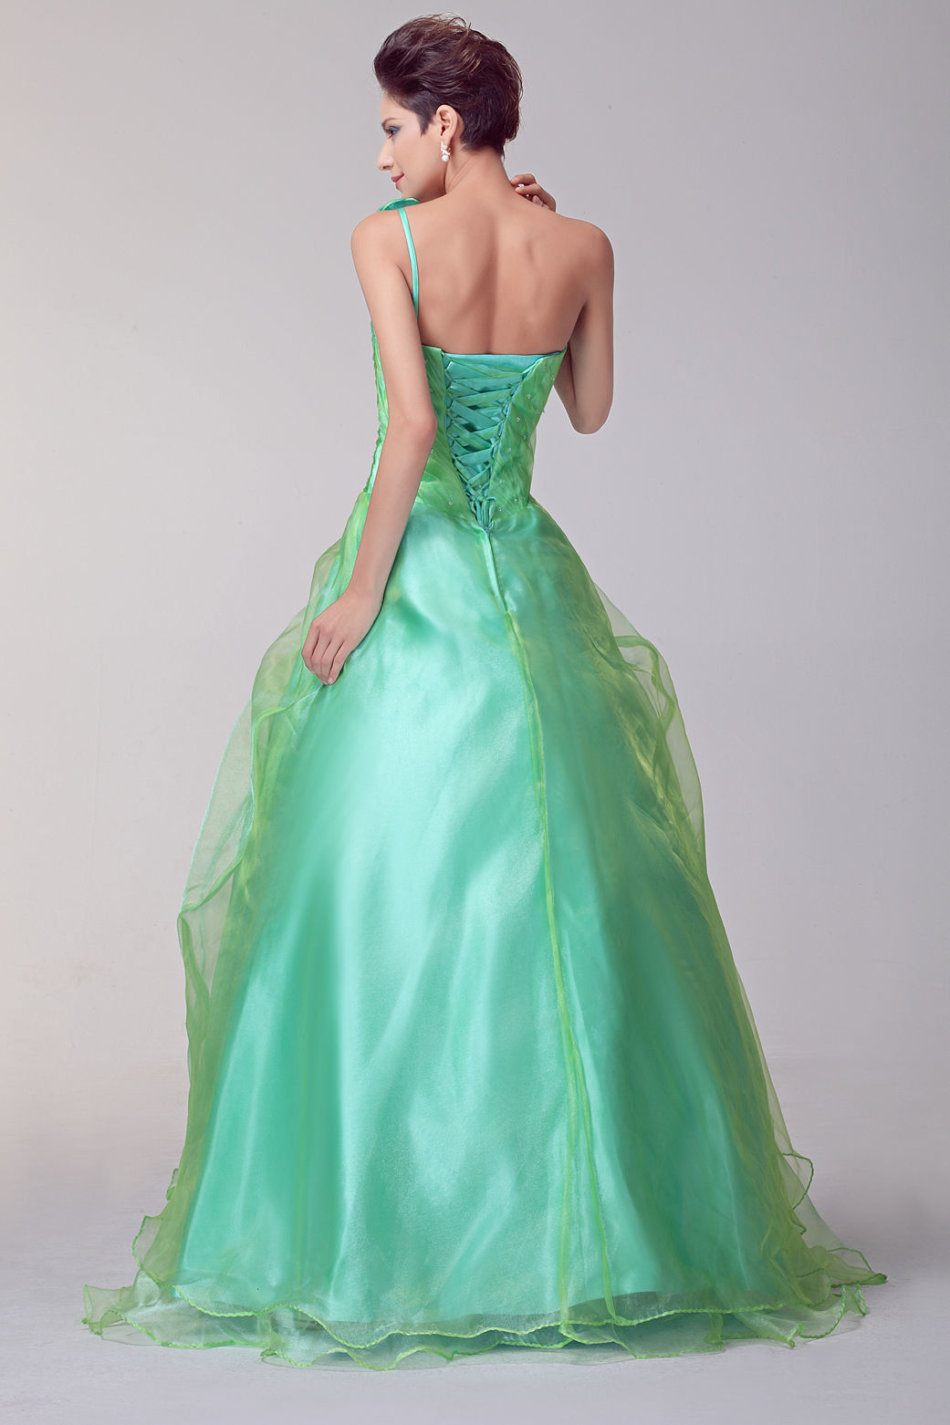 Matric Farewell Dresses | Junk Mail